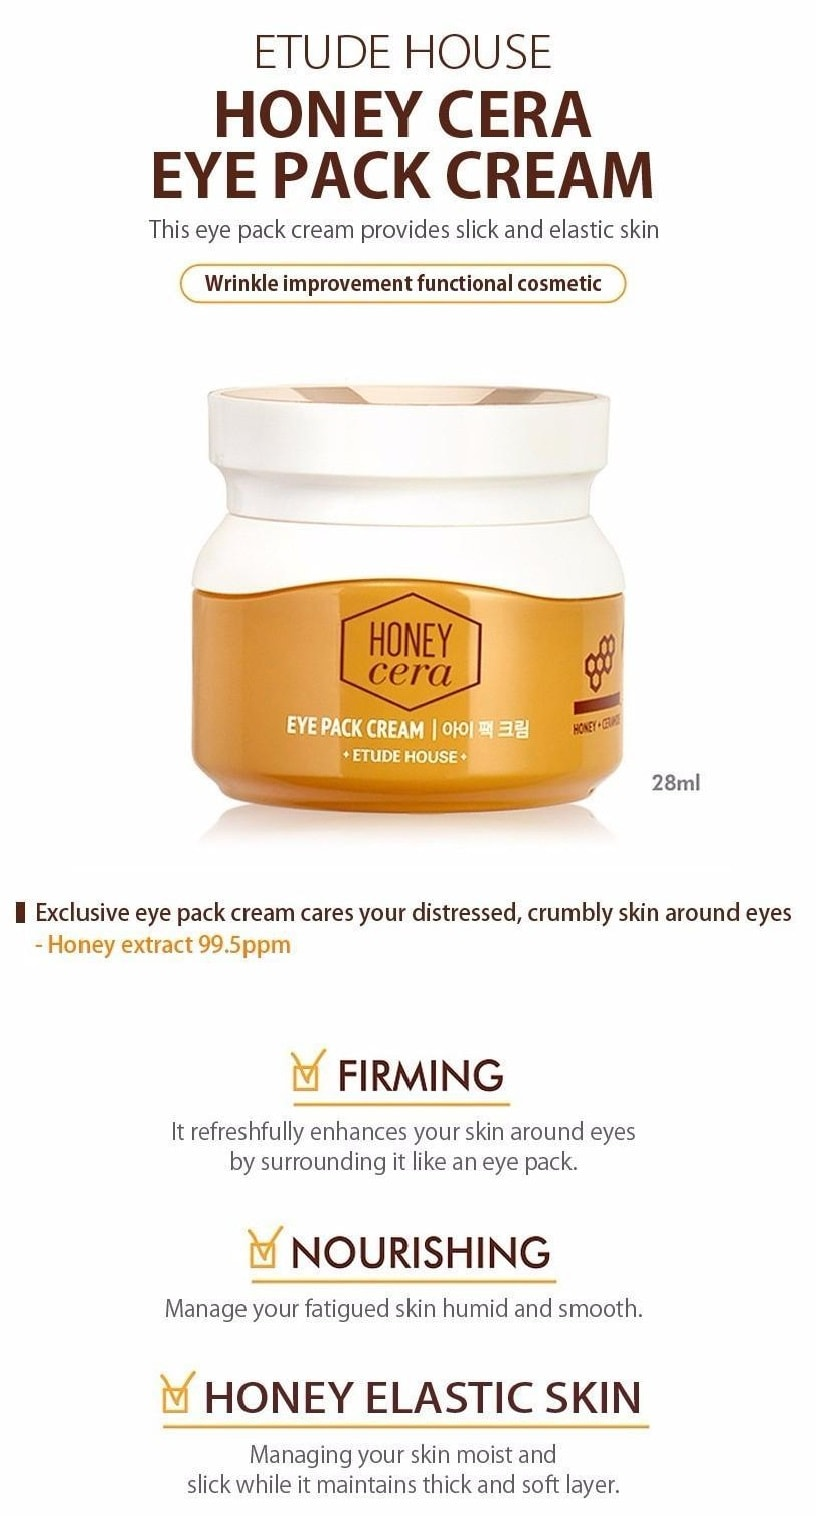 ETUDE HOUSE Honey Cera Eye Pack Cream 28ml